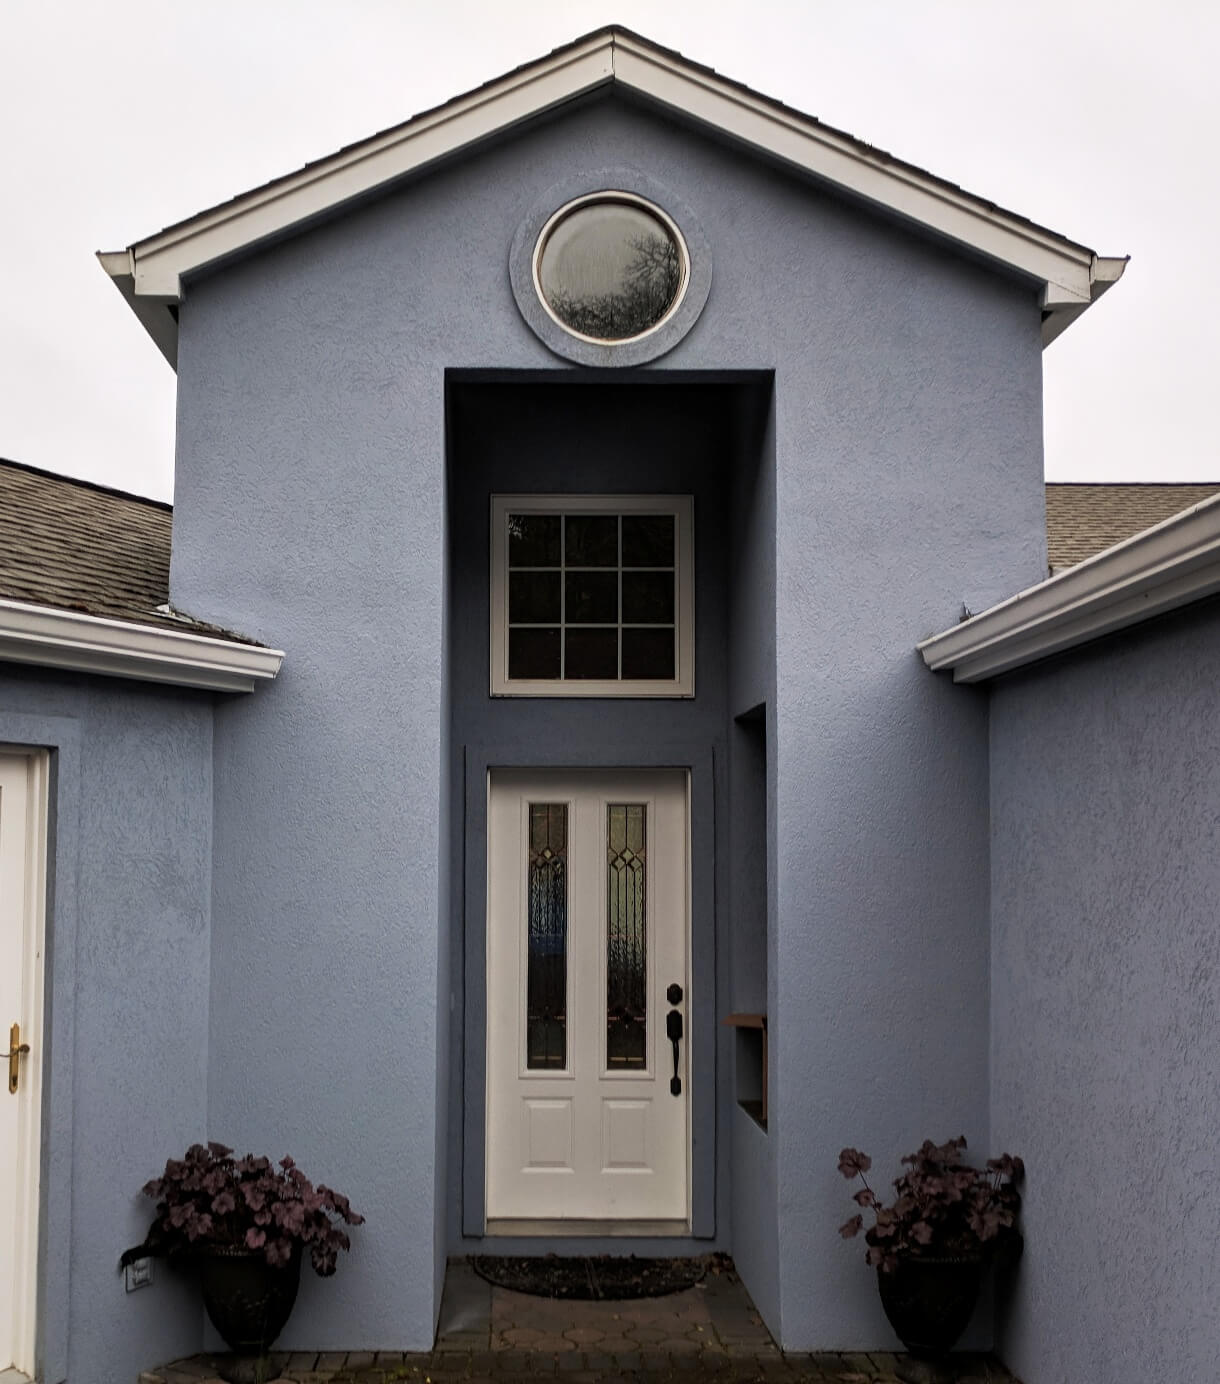 Stucco replaces the vertical siding to complete the exterior face lift of this renovation.